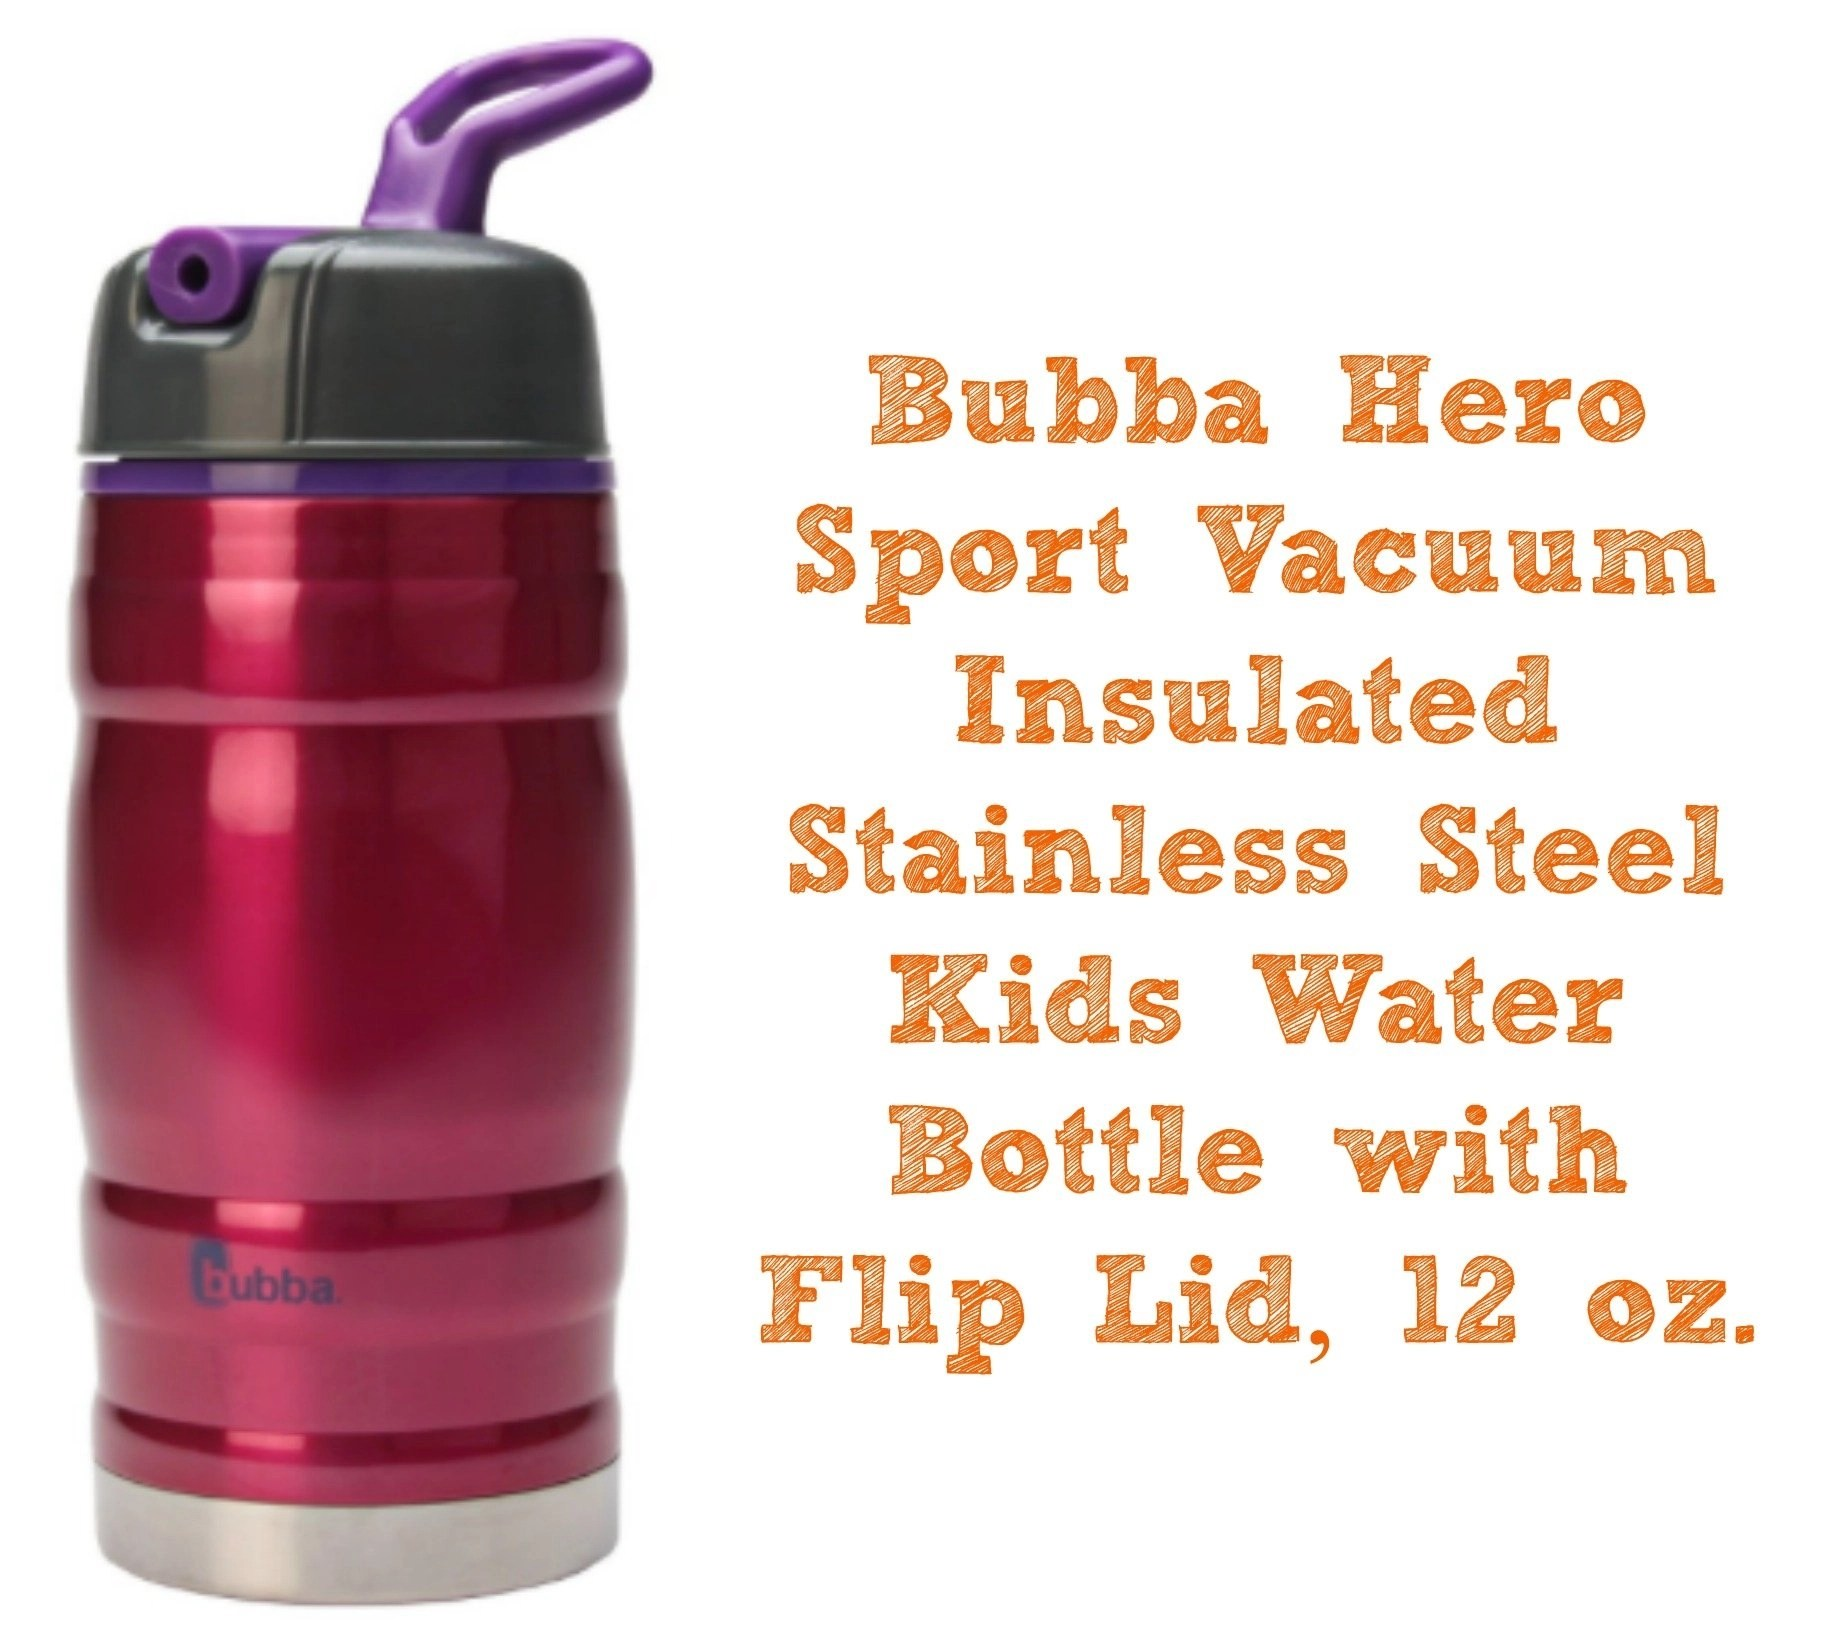 bubba-hero-sport-vacuum-insulated-stainless-steel-kids-water-bottle-with-flip-lid-12-oz